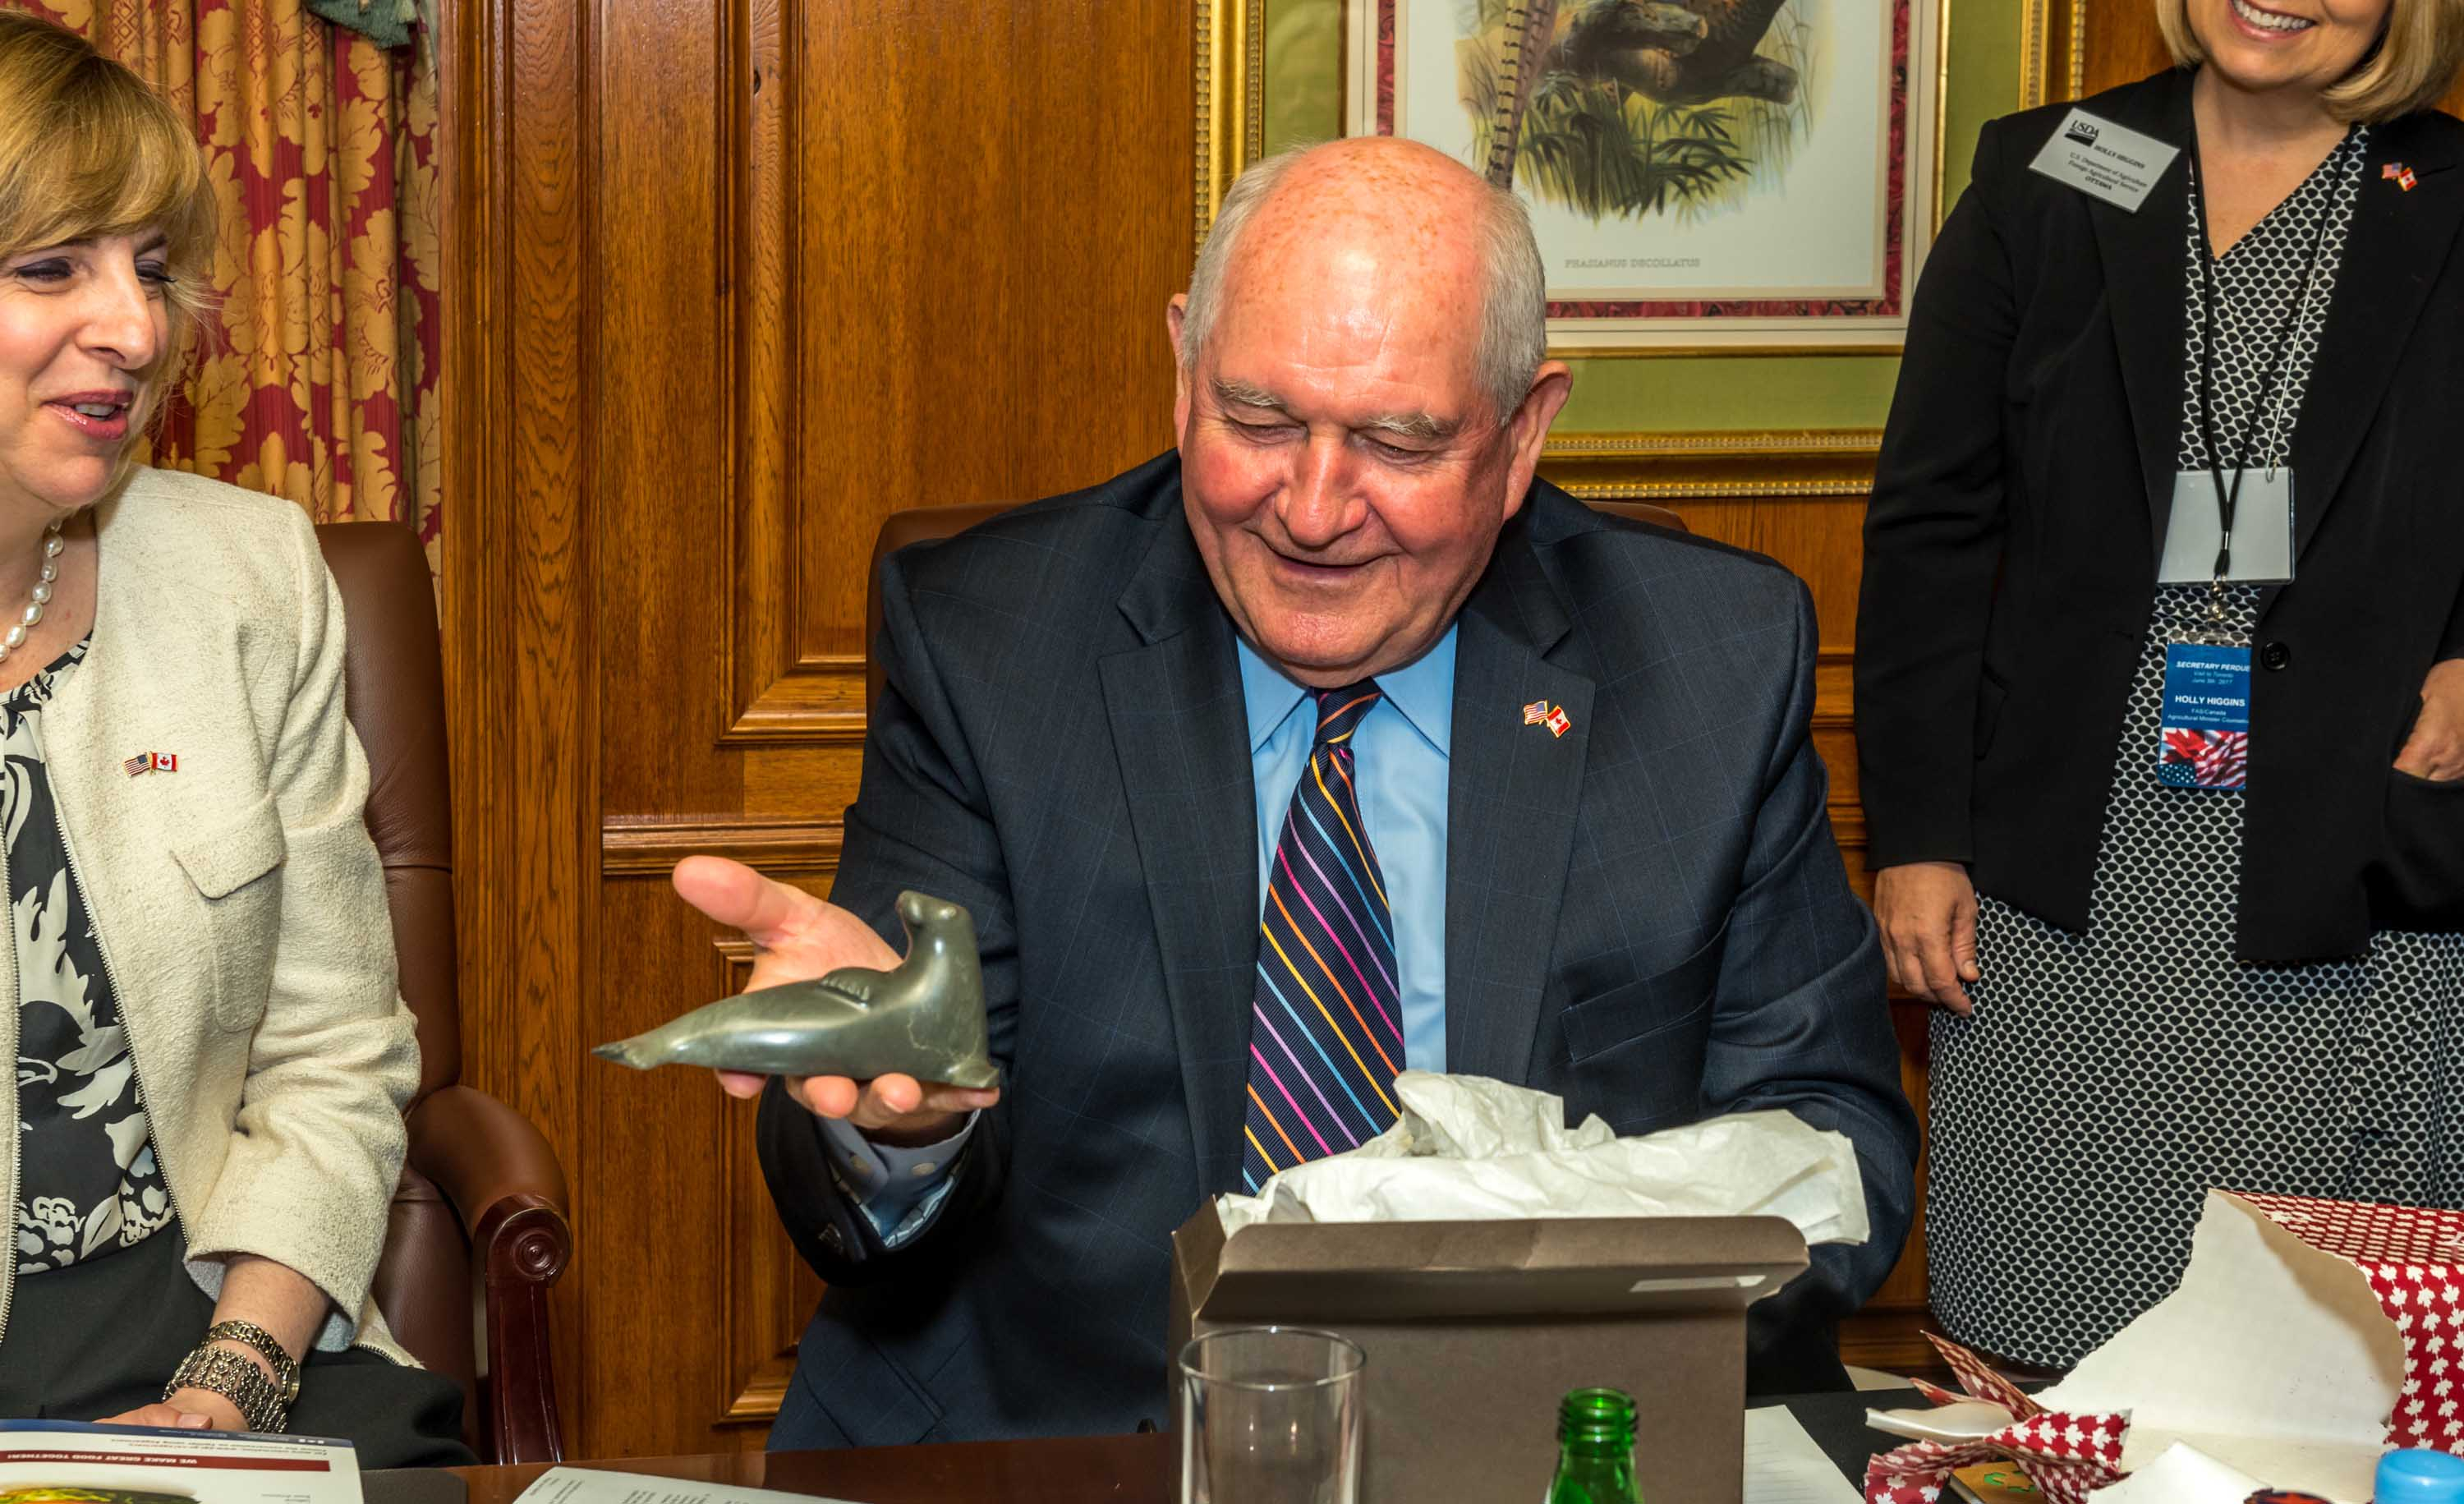 U.S. Agriculture Secretary Sonny Perdue visits Ontario County